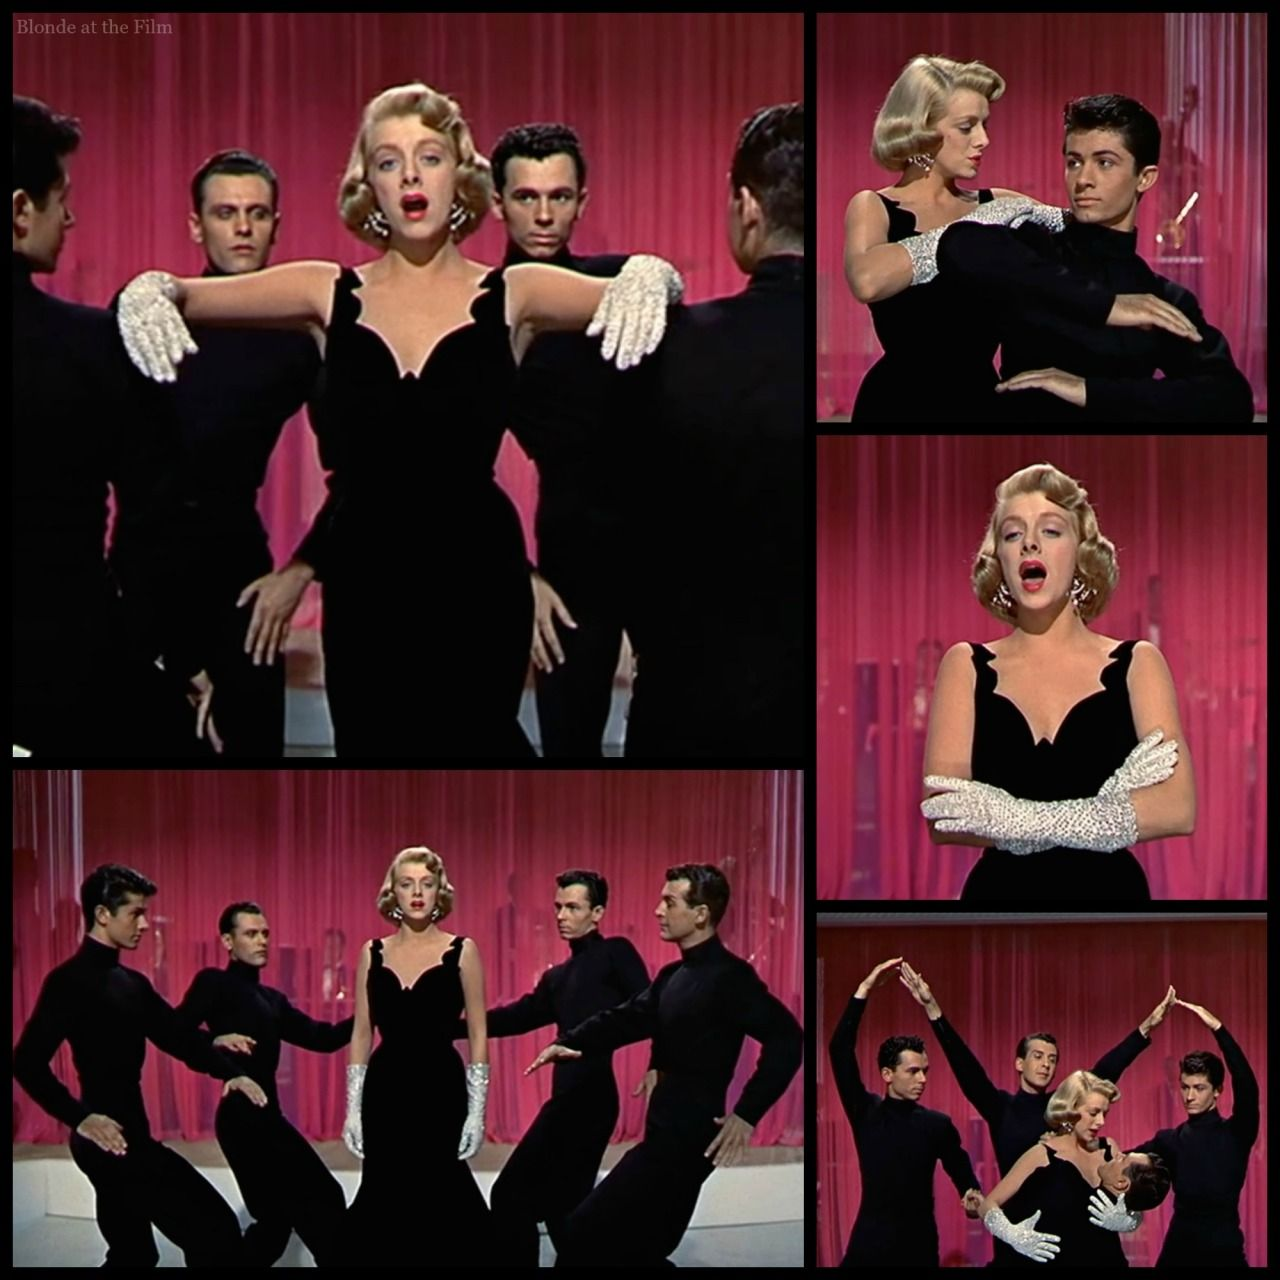 rosemary clooney in white christmas 1954 - Actors In White Christmas